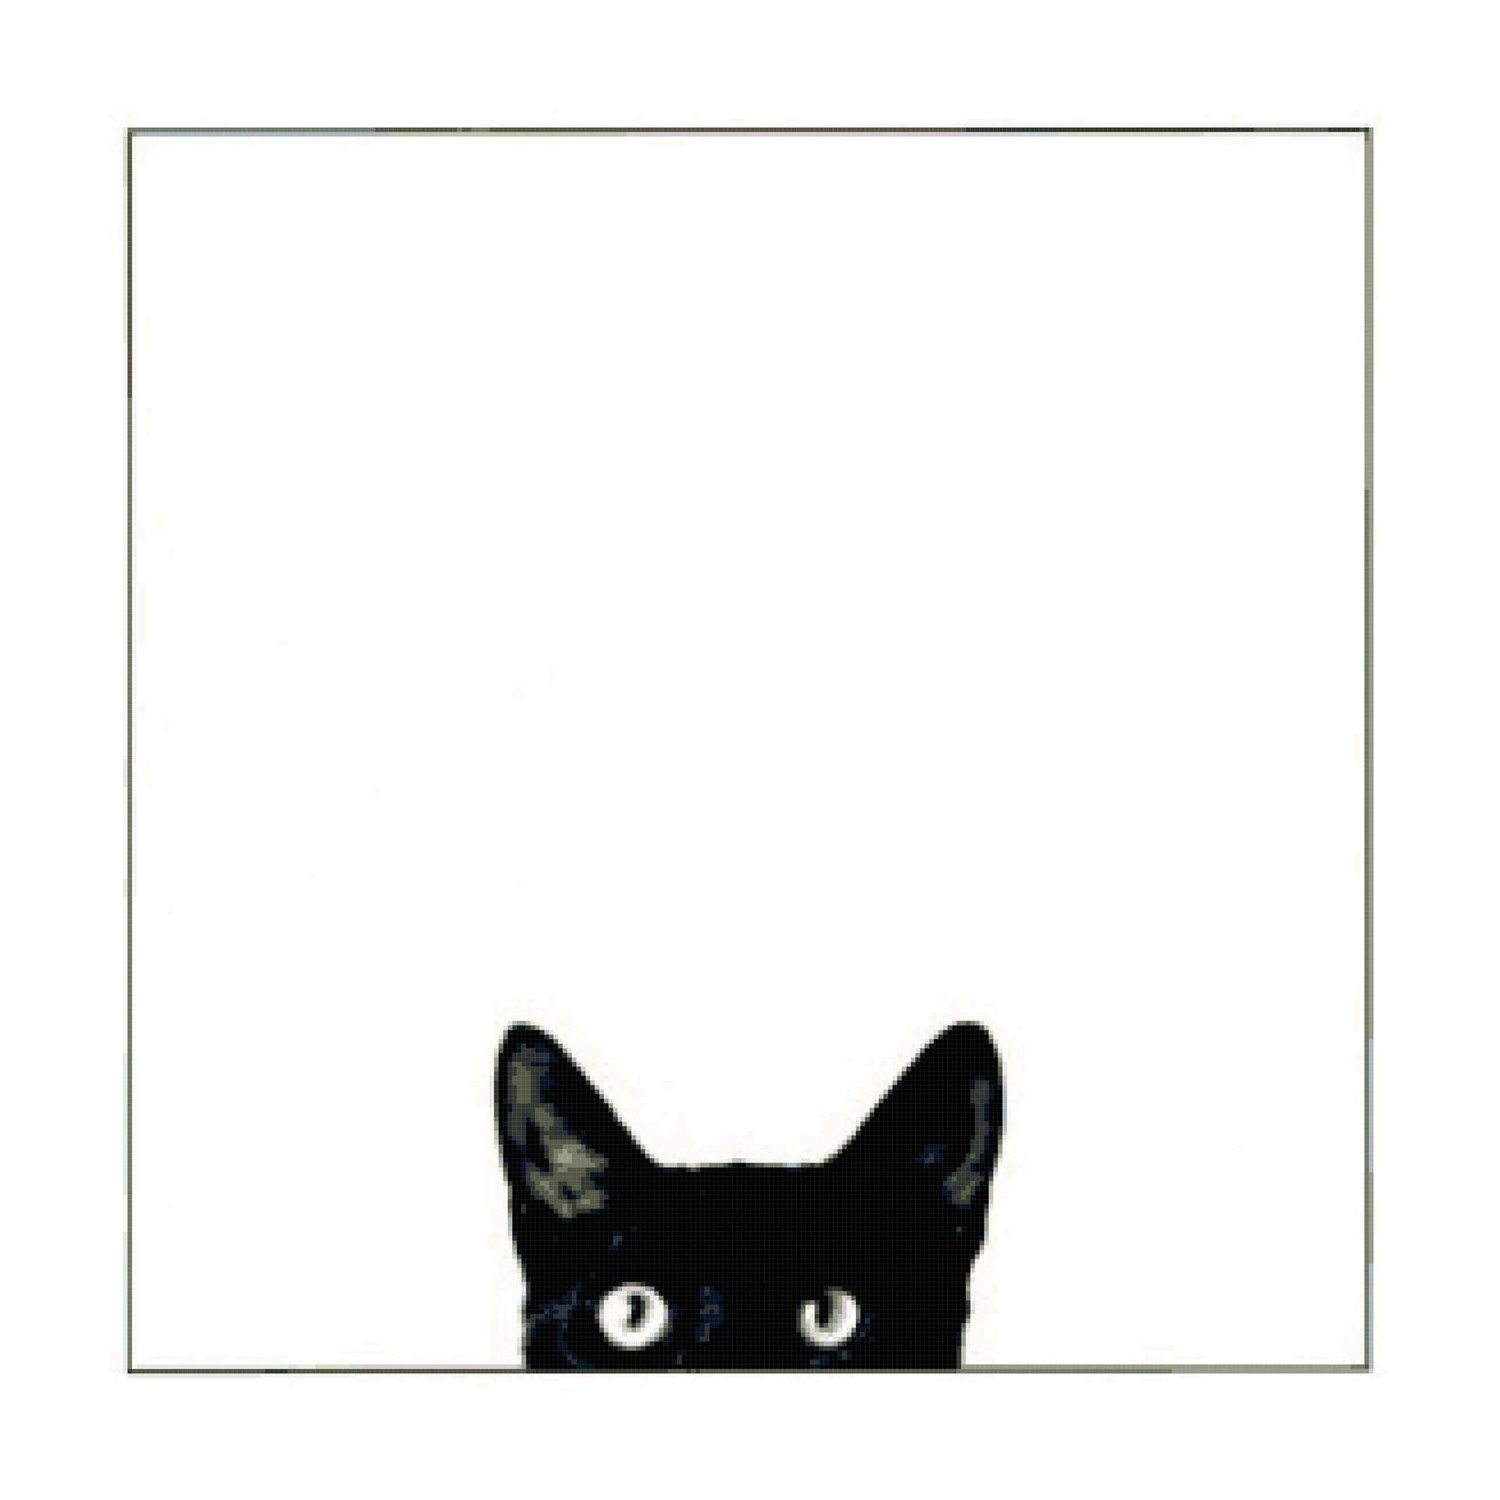 Peeking Black Cat Handmade Cross-Stitch Pattern | eBay